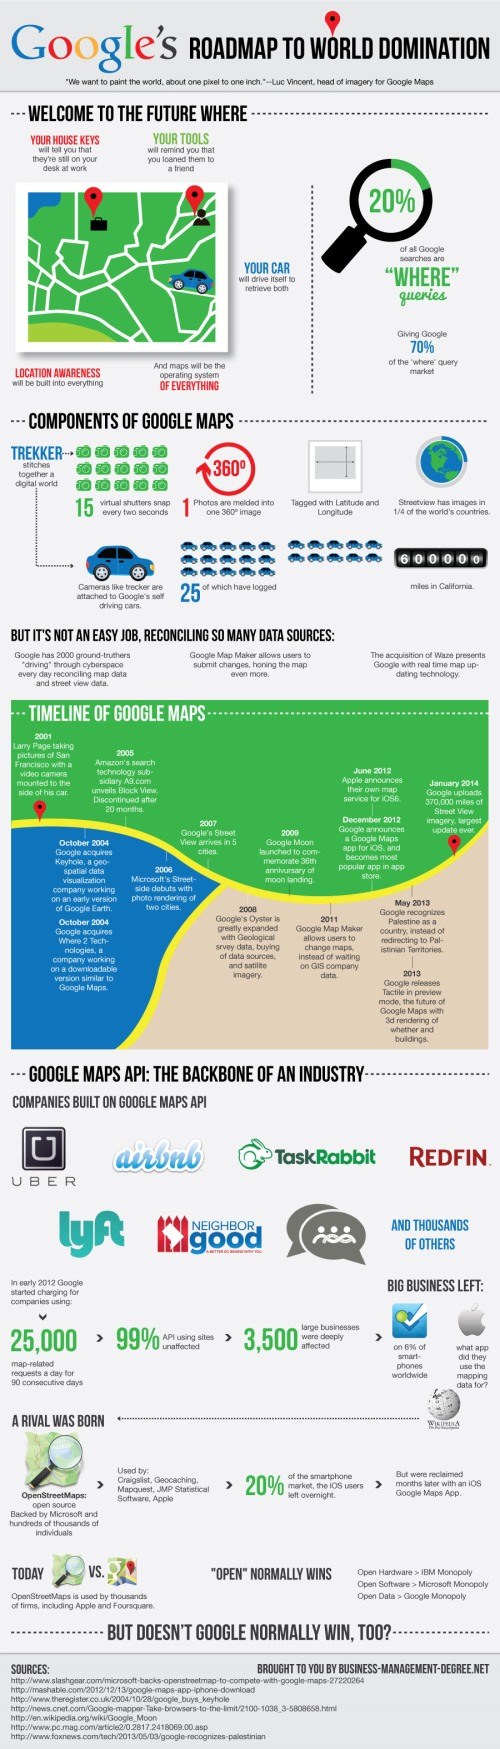 """April's """"Pin of the Month"""" on ShoreBranding.com - Google Maps API & how companies are leveraging it (and competitors)"""